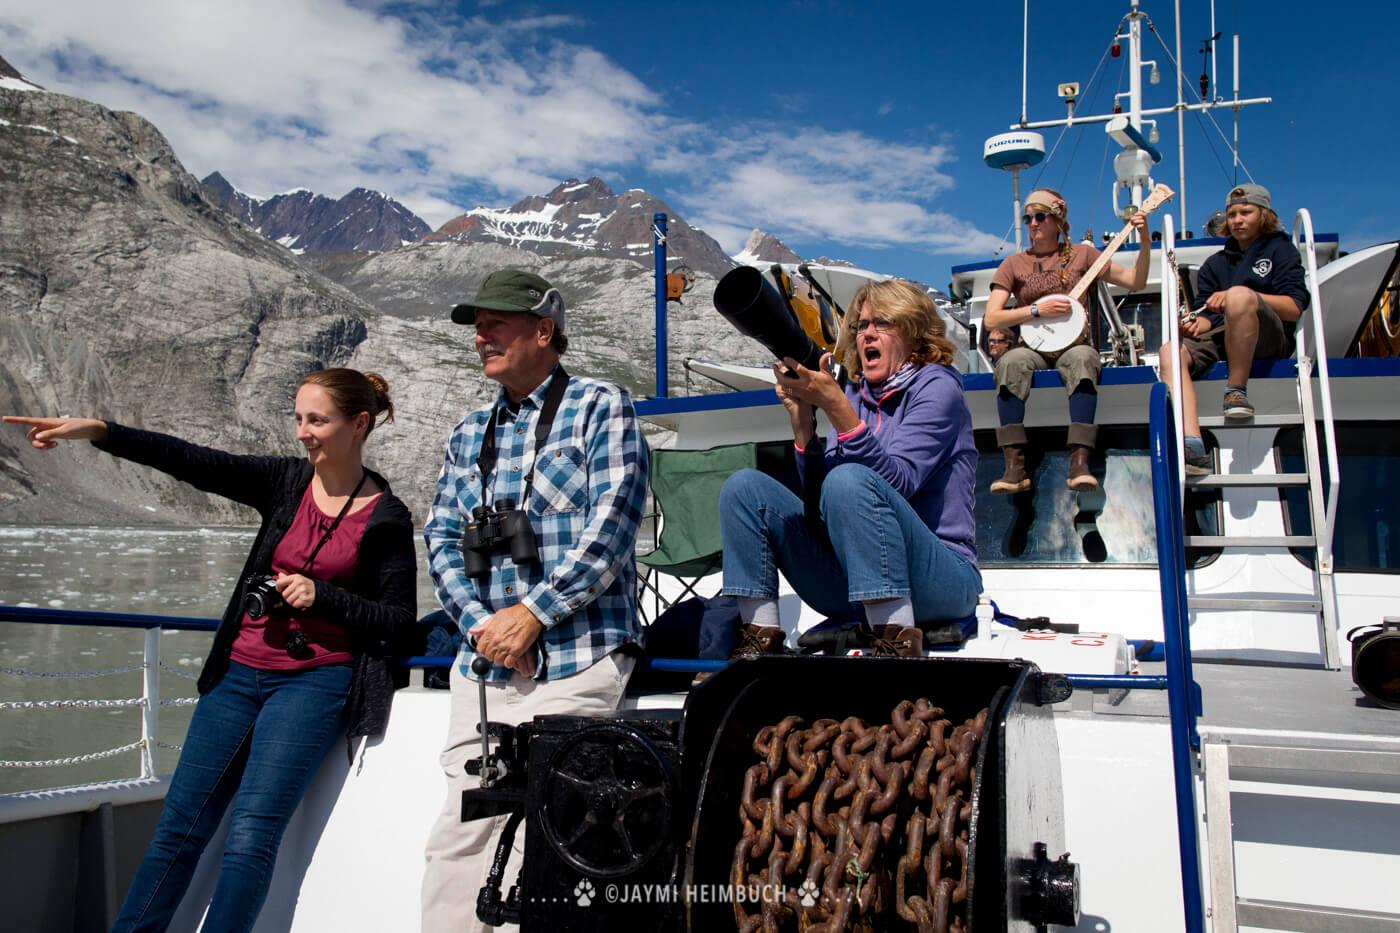 Passengers and crew observe wildlife from the ship's deck. © Jaymi Heimbuch